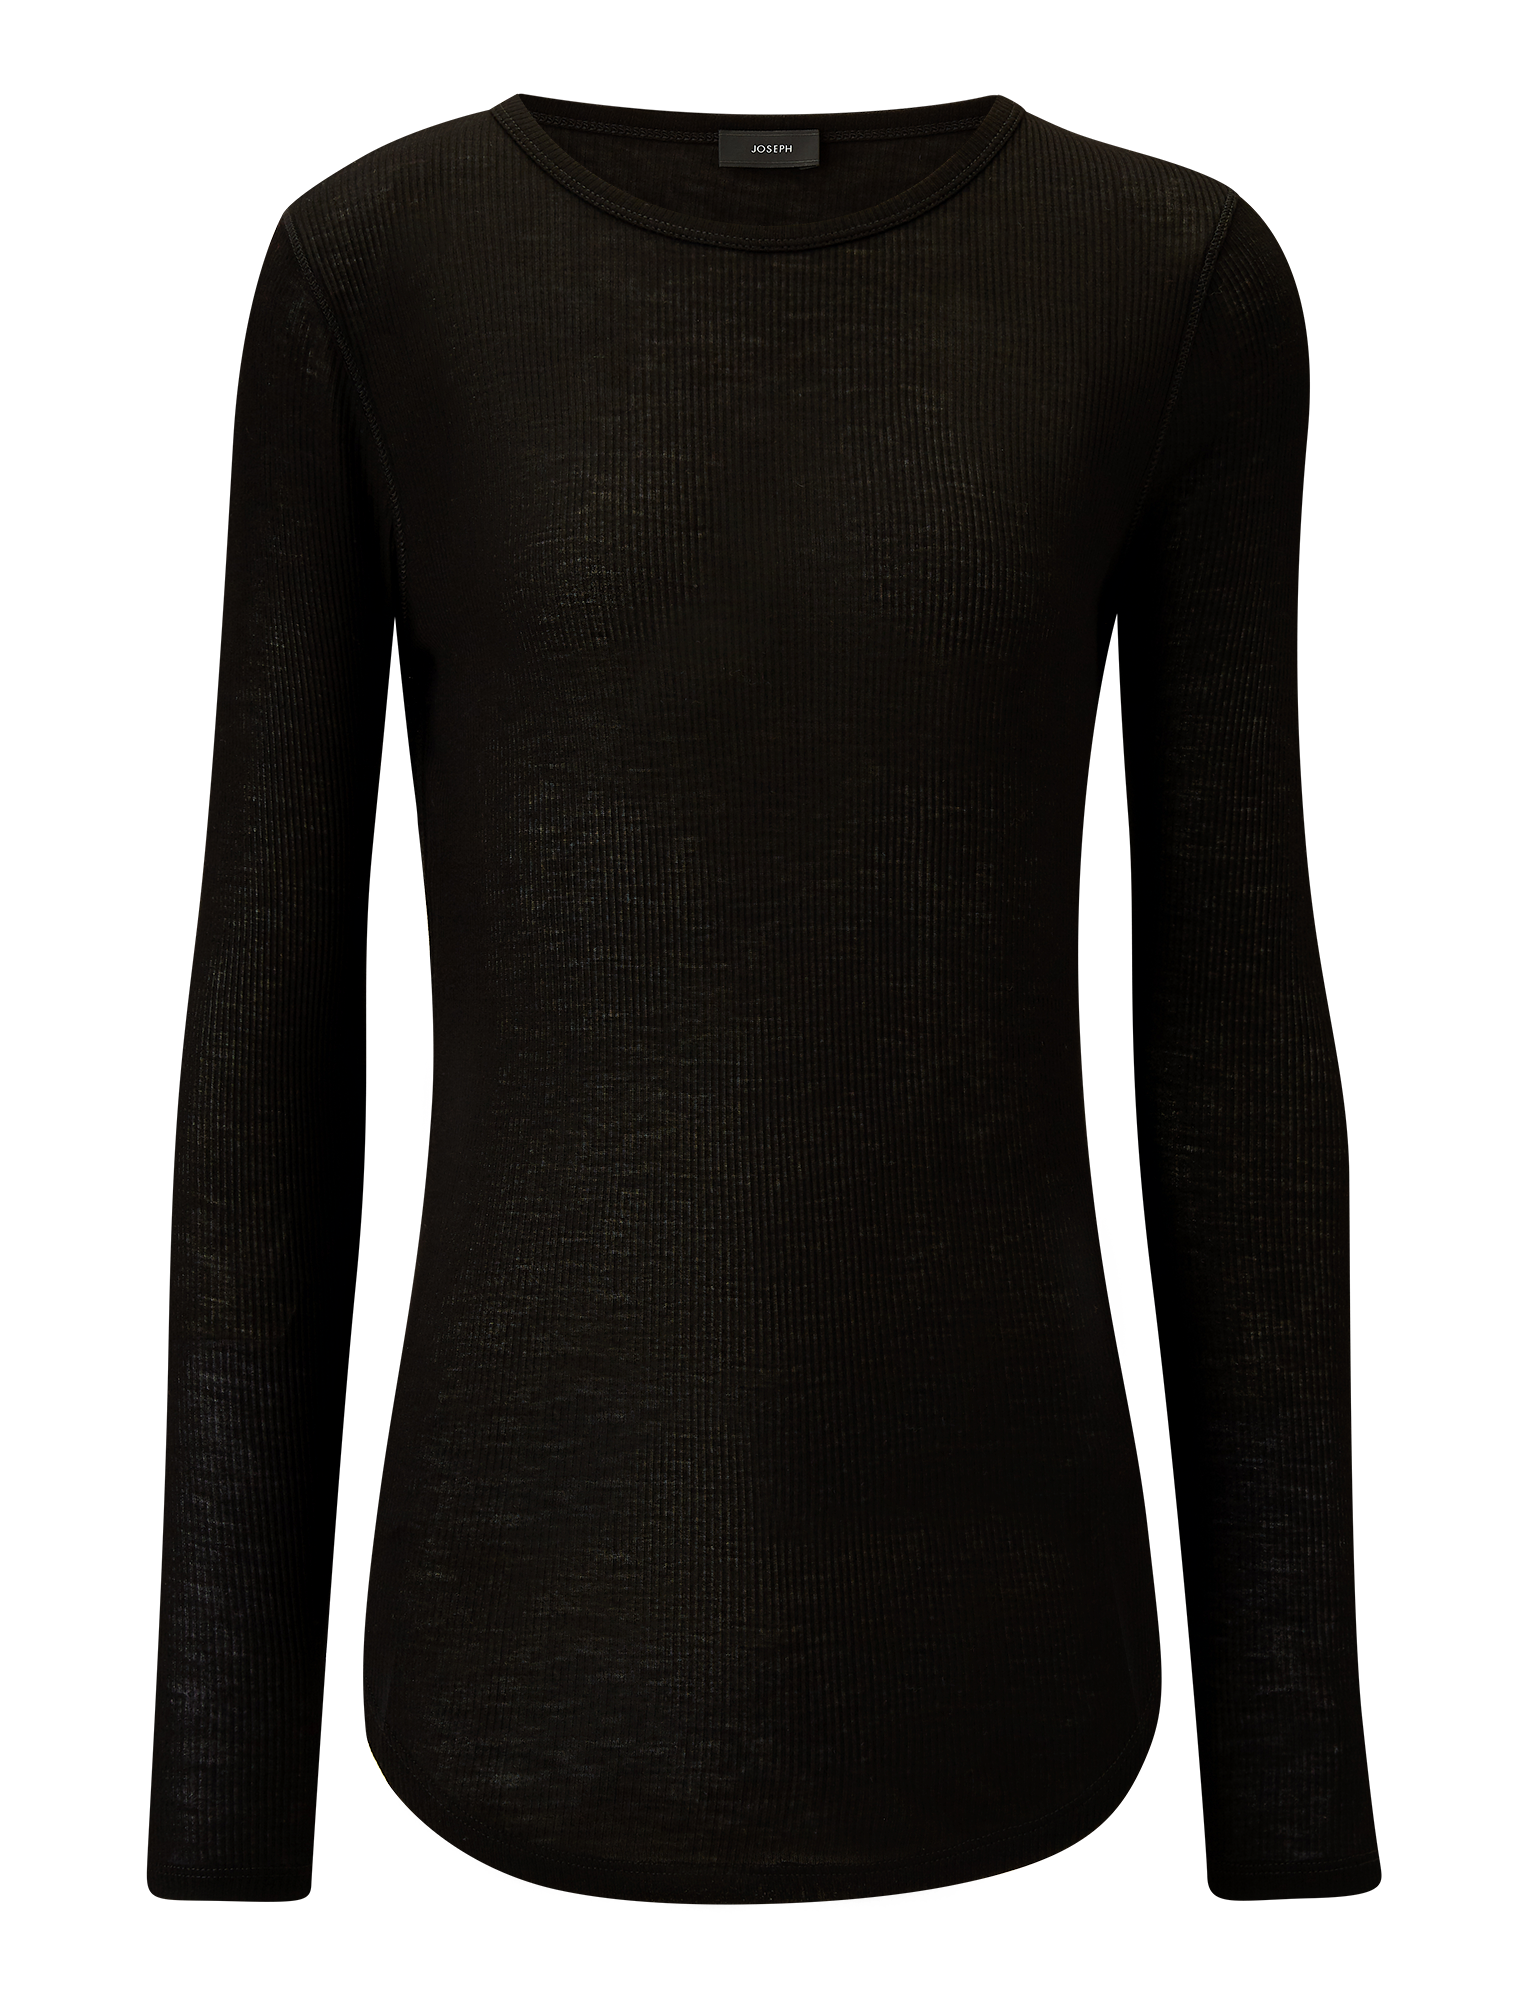 Joseph, Viscose Rib Jersey, in BLACK